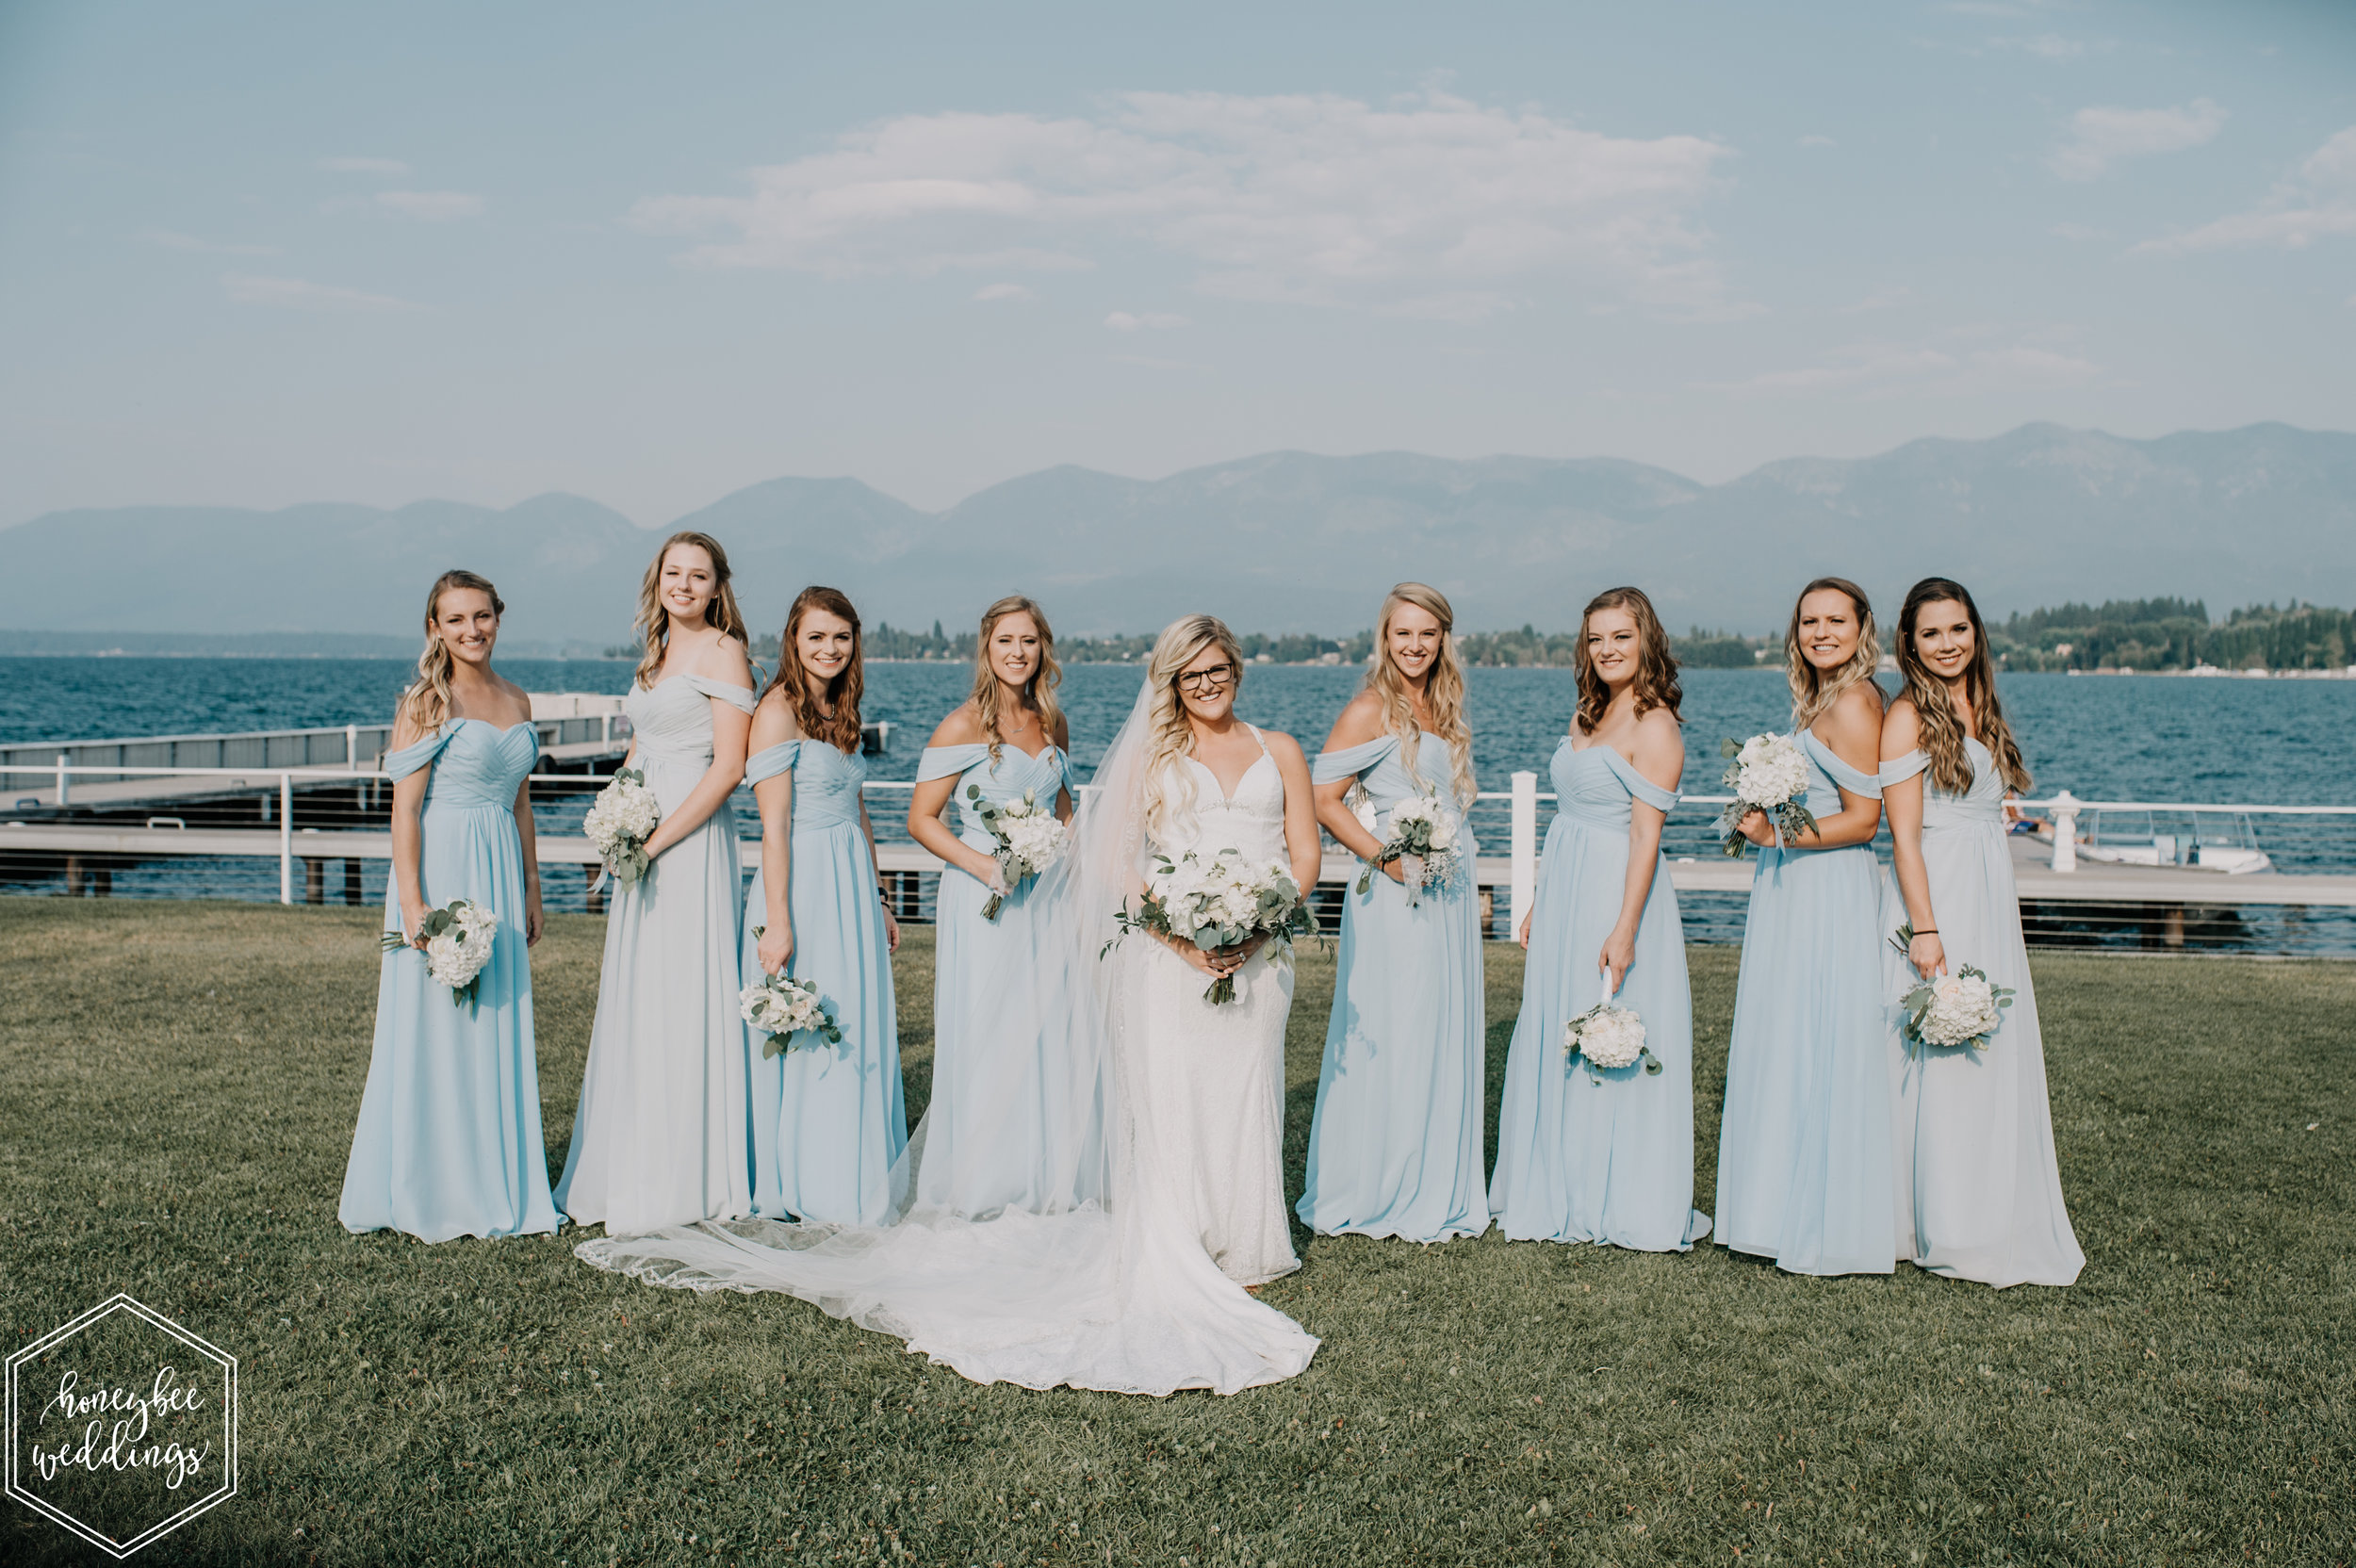 Kwatuqnuk Wedding_Montana Wedding Photographer_Katie White & Tommy Tosic_August 04, 2018-773.jpg